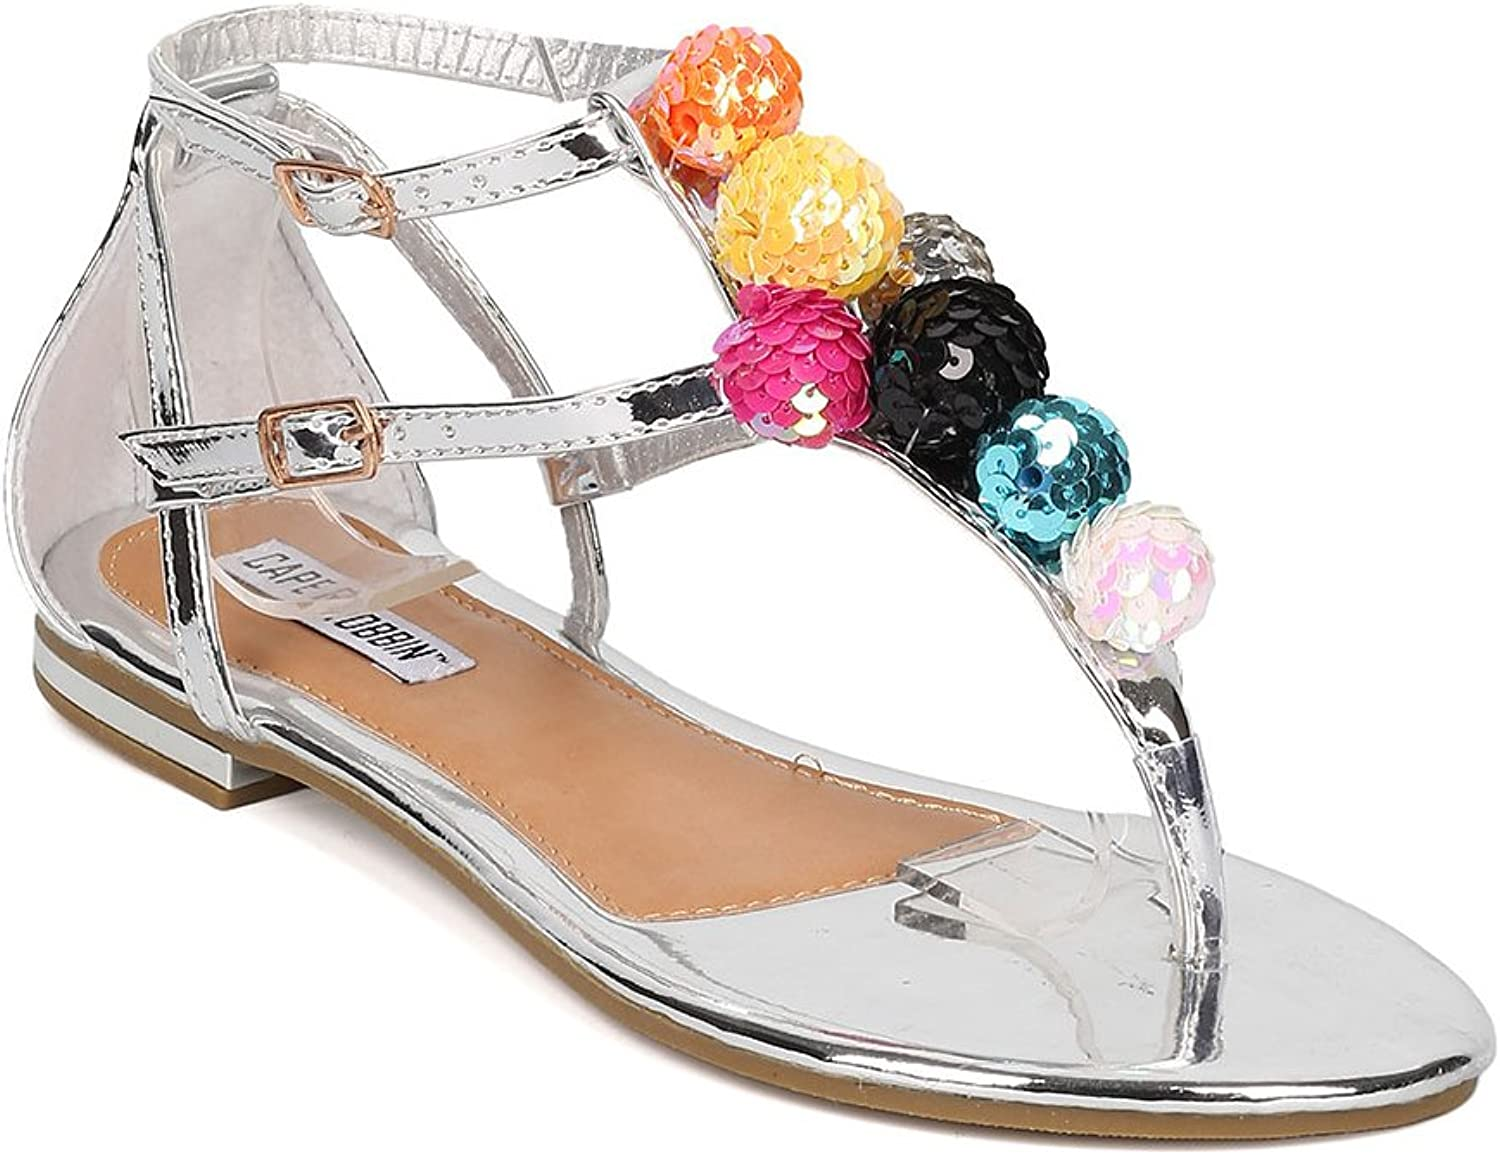 CAPE ROBBIN HK28 Women Leatherette T-Strap Sequinned Ornament Sandal HJ29